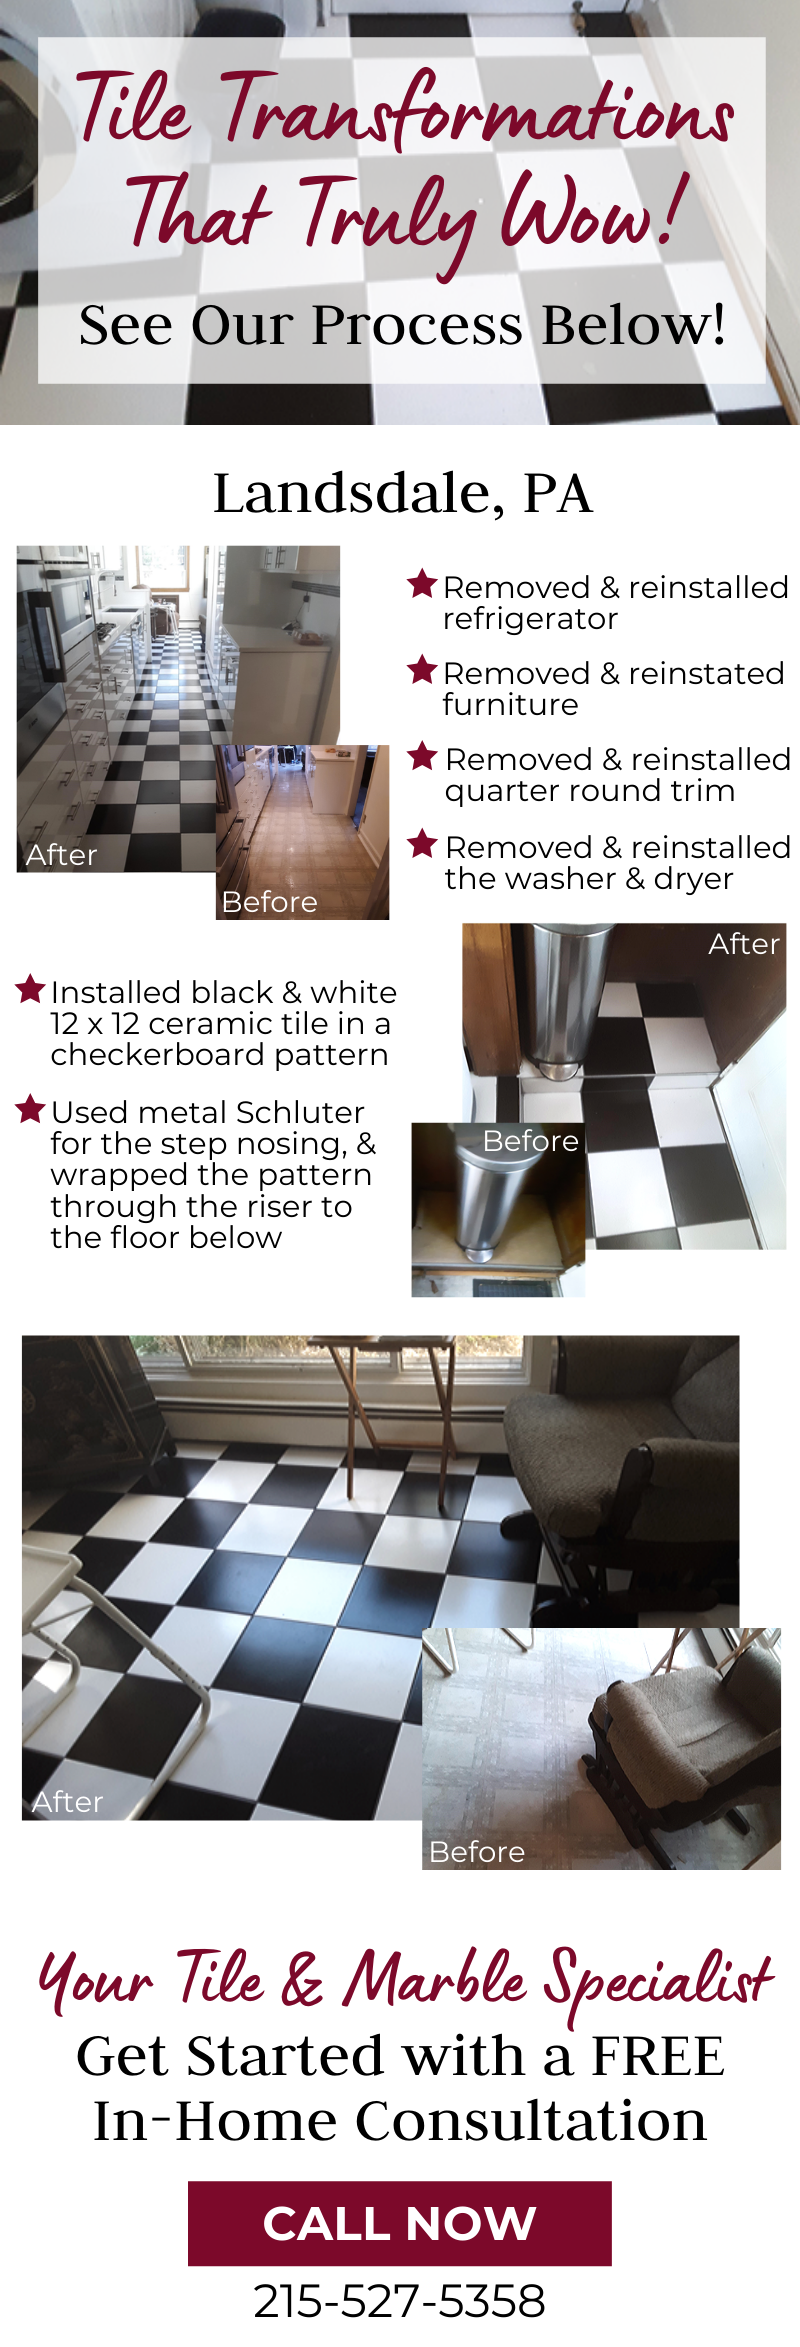 Tile Transformations That Truly Wow! 1